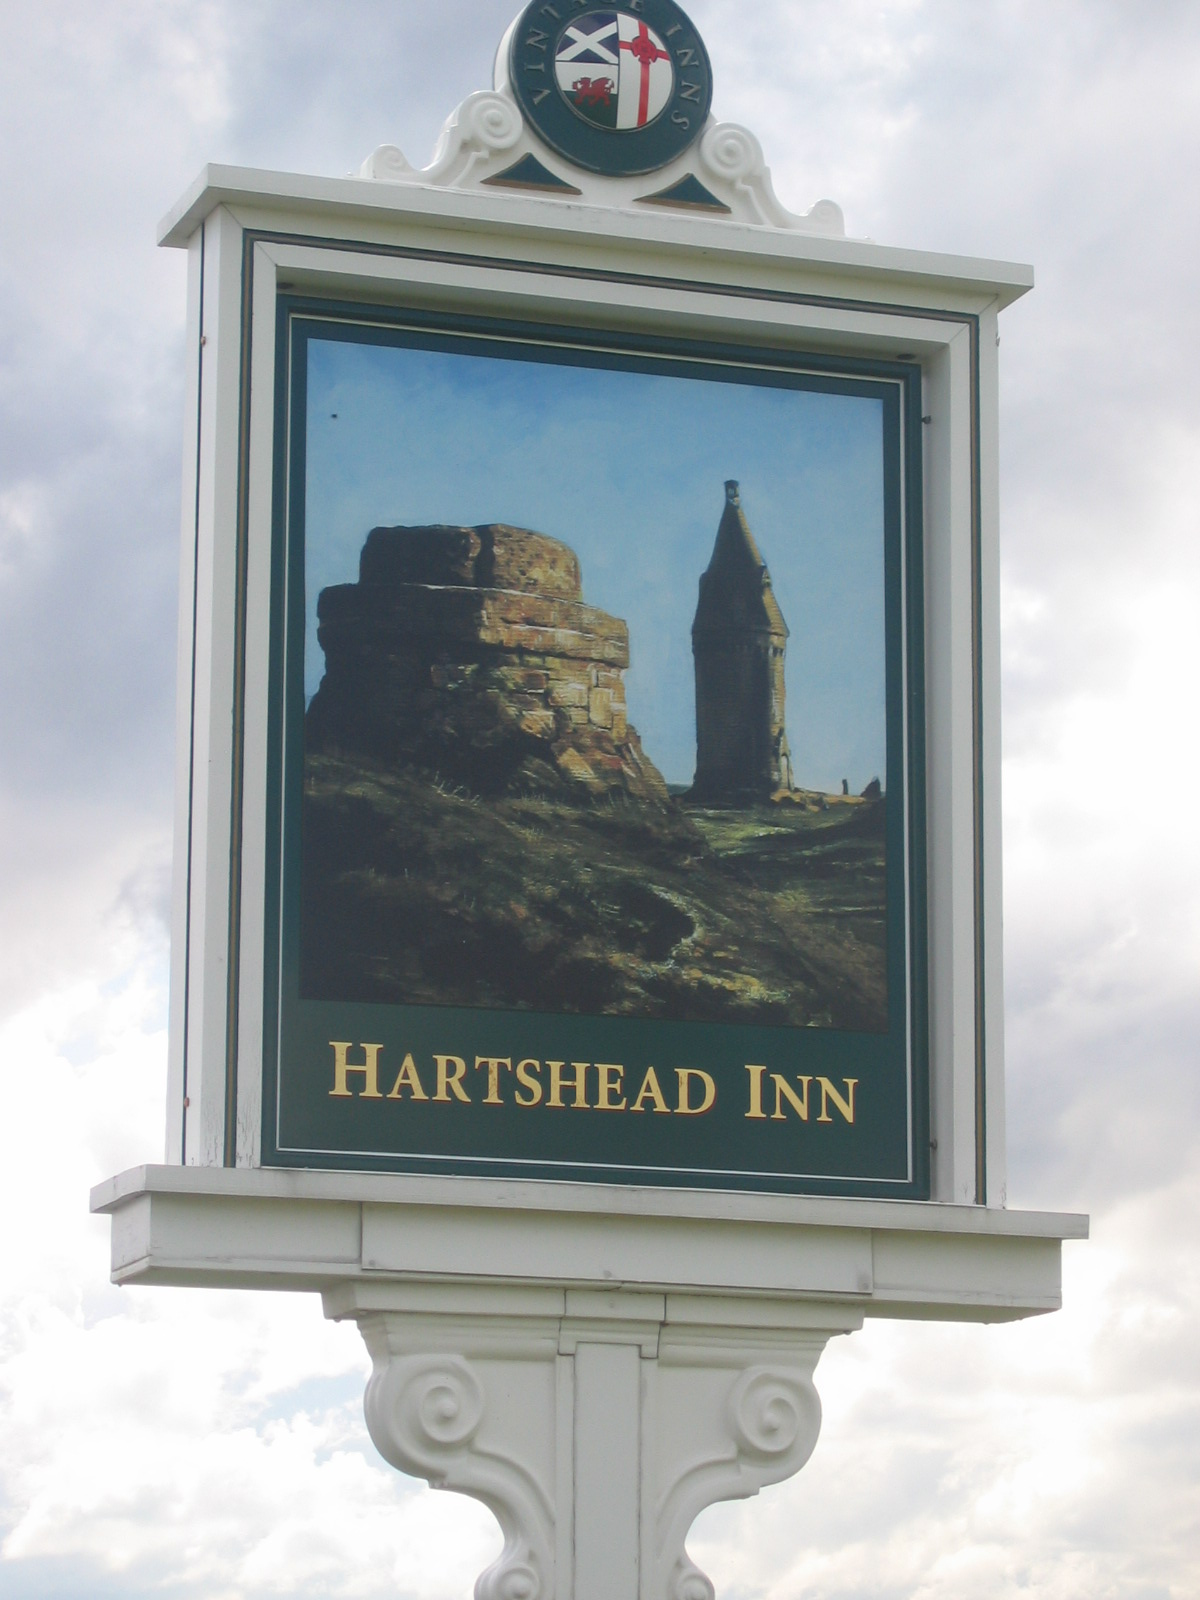 Photo taken by me - Pub Sign for The Hartshead - Ashton Manchester